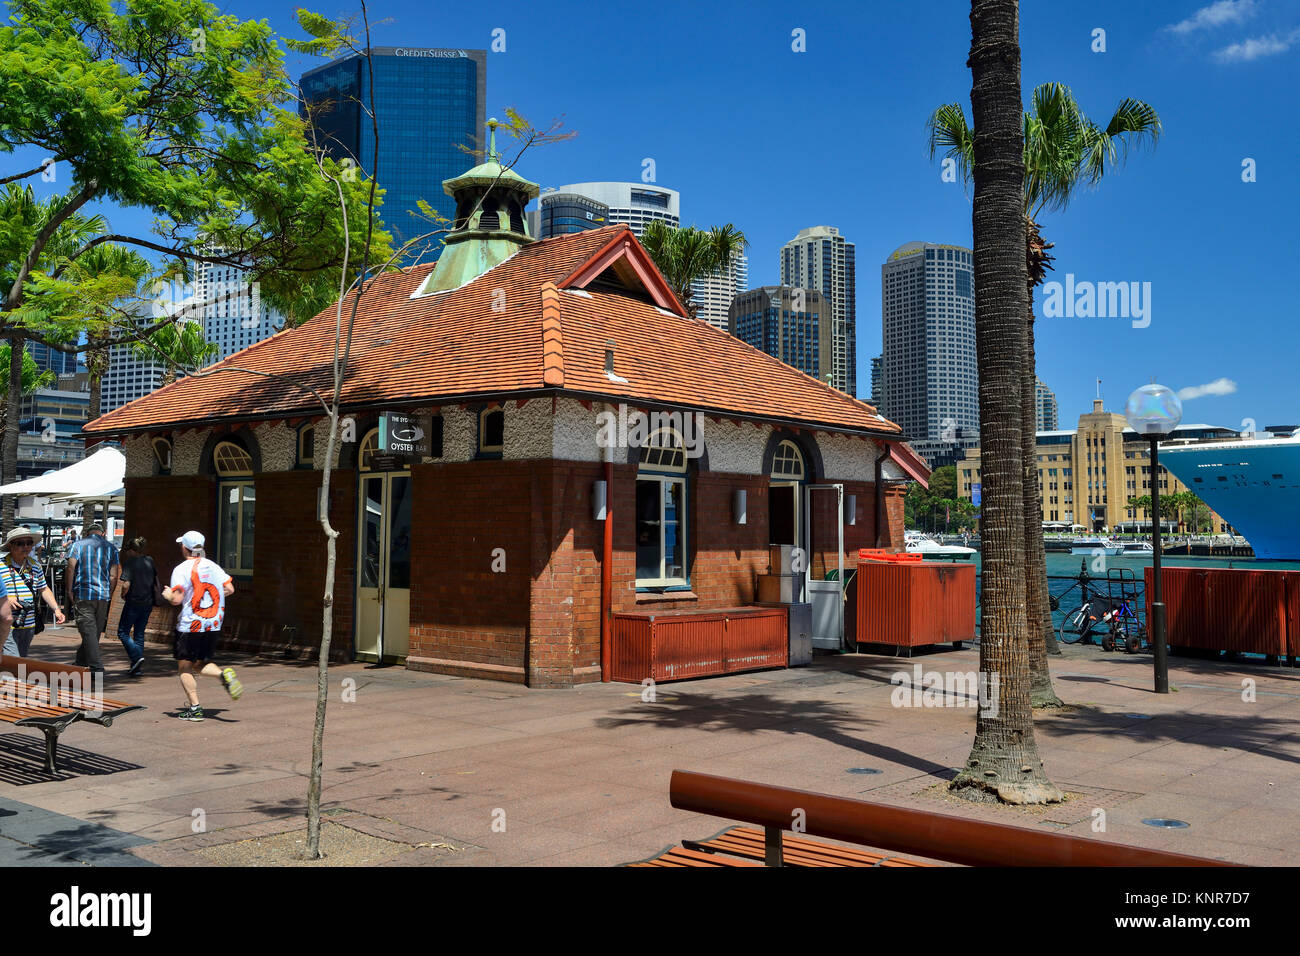 Sydney Cove Oyster Bar on east side of Circular Quay, Sydney, New South Wales, Australia - Stock Image